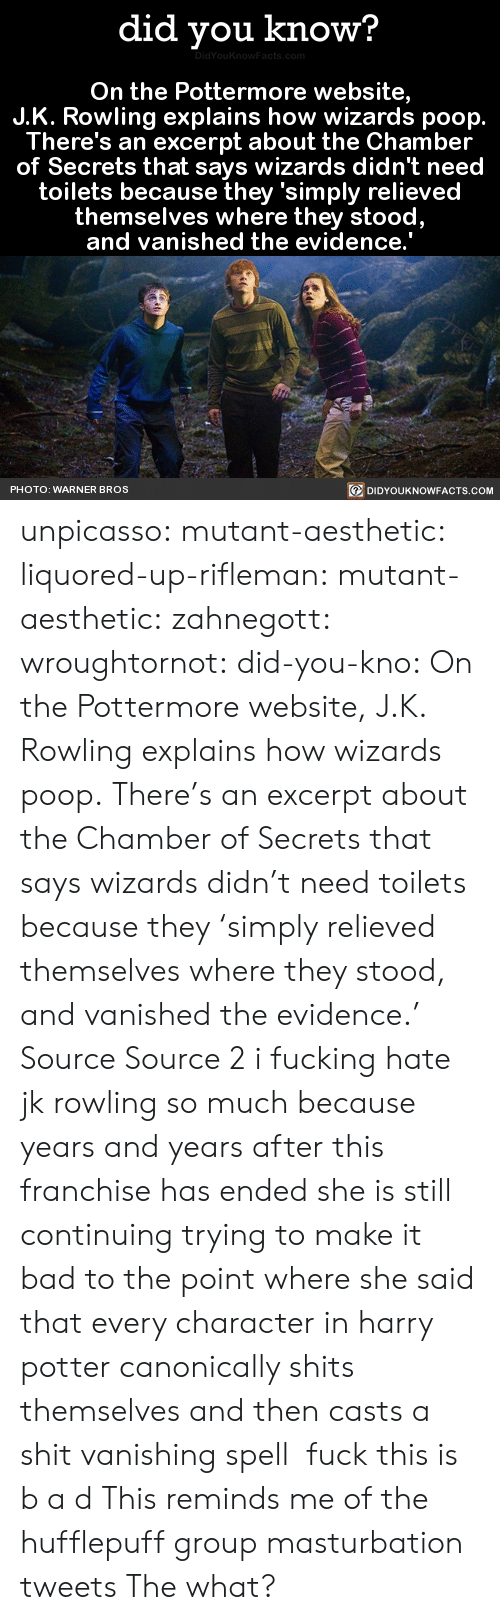 Bad, Fucking, and Harry Potter: did you know?  On the Pottermore website,  J.K. Rowling explains how wizards poop.  There's an excerpt about the Chamber  of Secrets that says wizards didn't need  toilets because they 'simply relieved  themselves where they stood  and vanished the evidence.  PHOTO: WARNER BROS  DIDYOUKNOWFACTS.COM unpicasso:  mutant-aesthetic:  liquored-up-rifleman:  mutant-aesthetic:   zahnegott:  wroughtornot:  did-you-kno: On the Pottermore website, J.K. Rowling explains how wizards poop. There's an excerpt about the Chamber of Secrets that says wizards didn't need toilets because they 'simply relieved themselves where they stood, and vanished the evidence.'  Source Source 2 i fucking hate jk rowling so much because years and years after this franchise has ended she is still continuing trying to make it bad to the point where she said that every character in harry potter canonically shits themselves and then casts a shit vanishing spell  fuck this is b a d   This reminds me of the hufflepuff group masturbation tweets   The what?